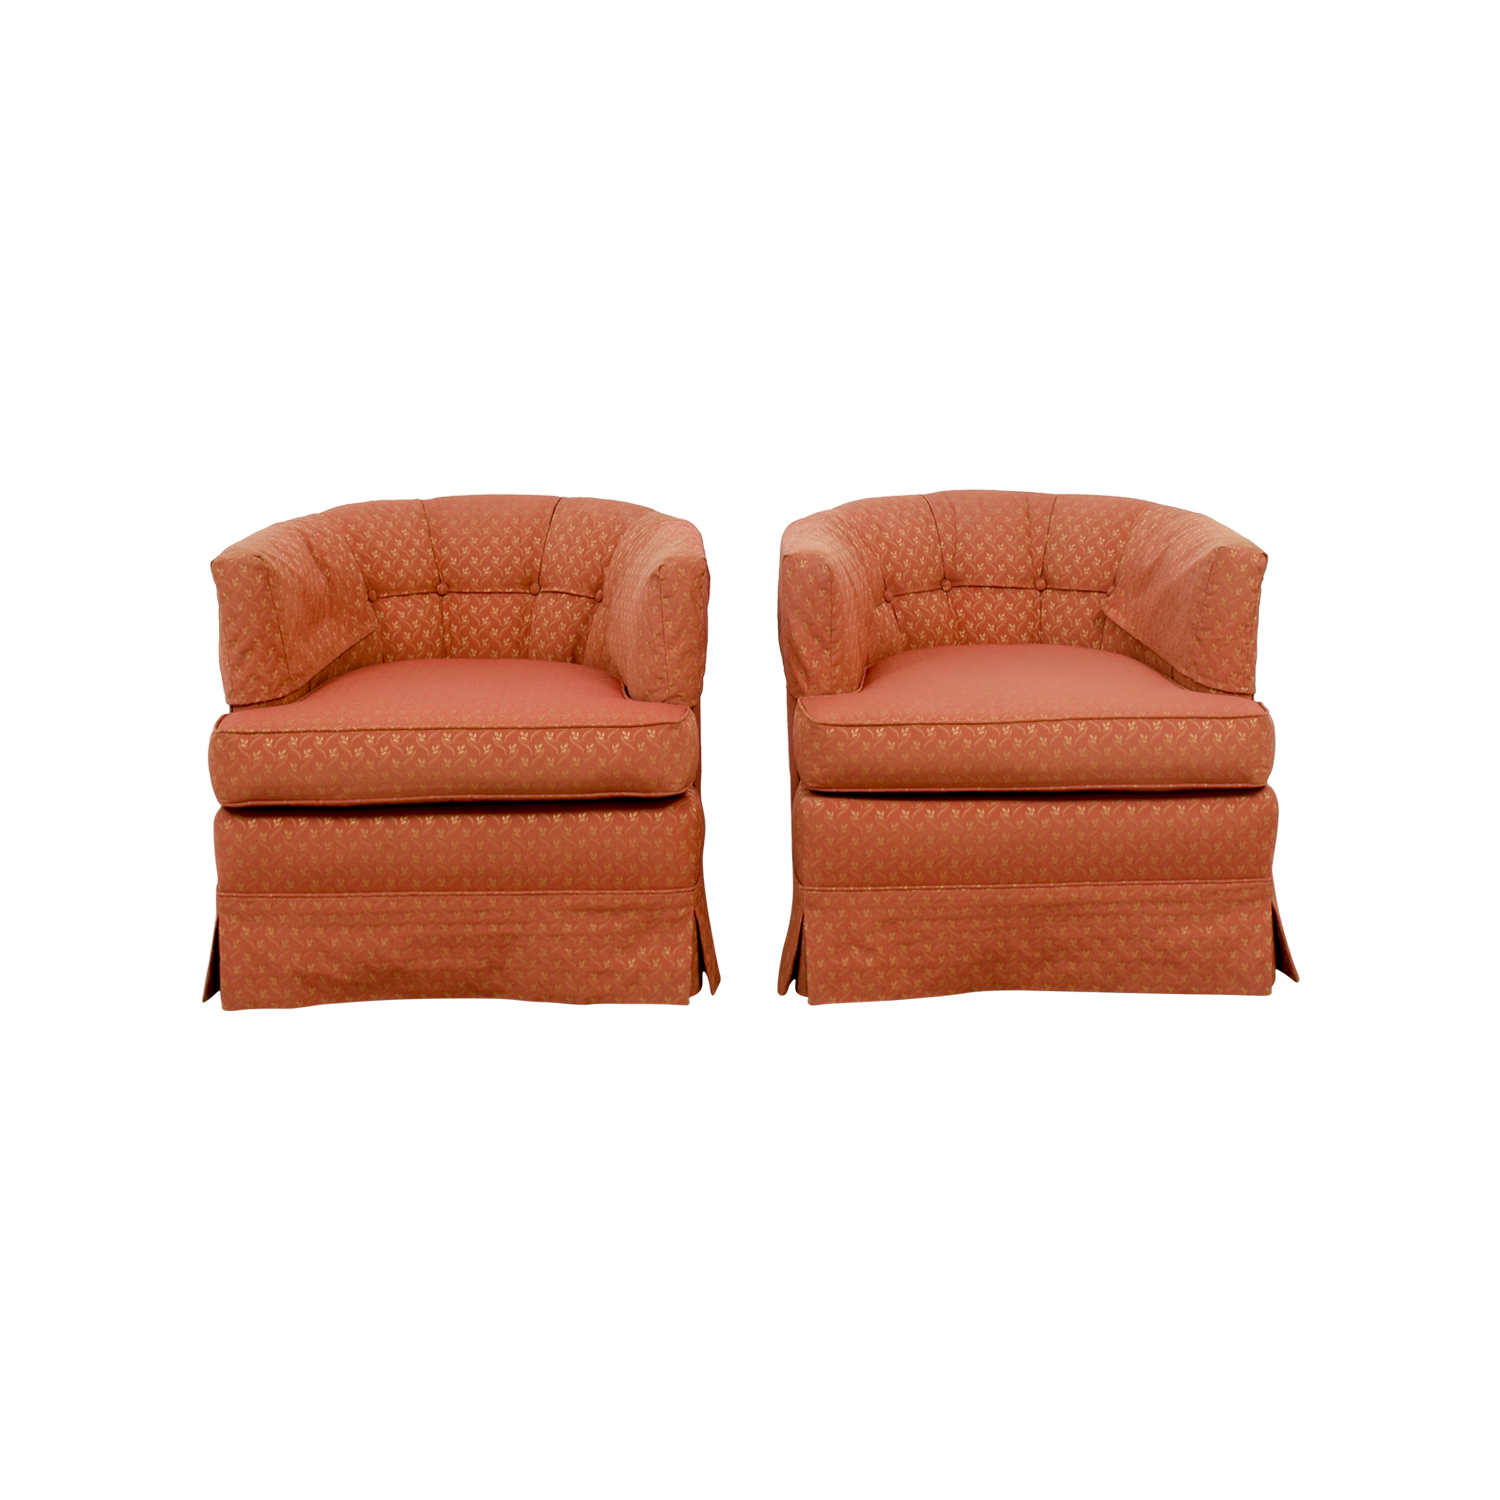 Red Upholstered Accent Chairs nyc